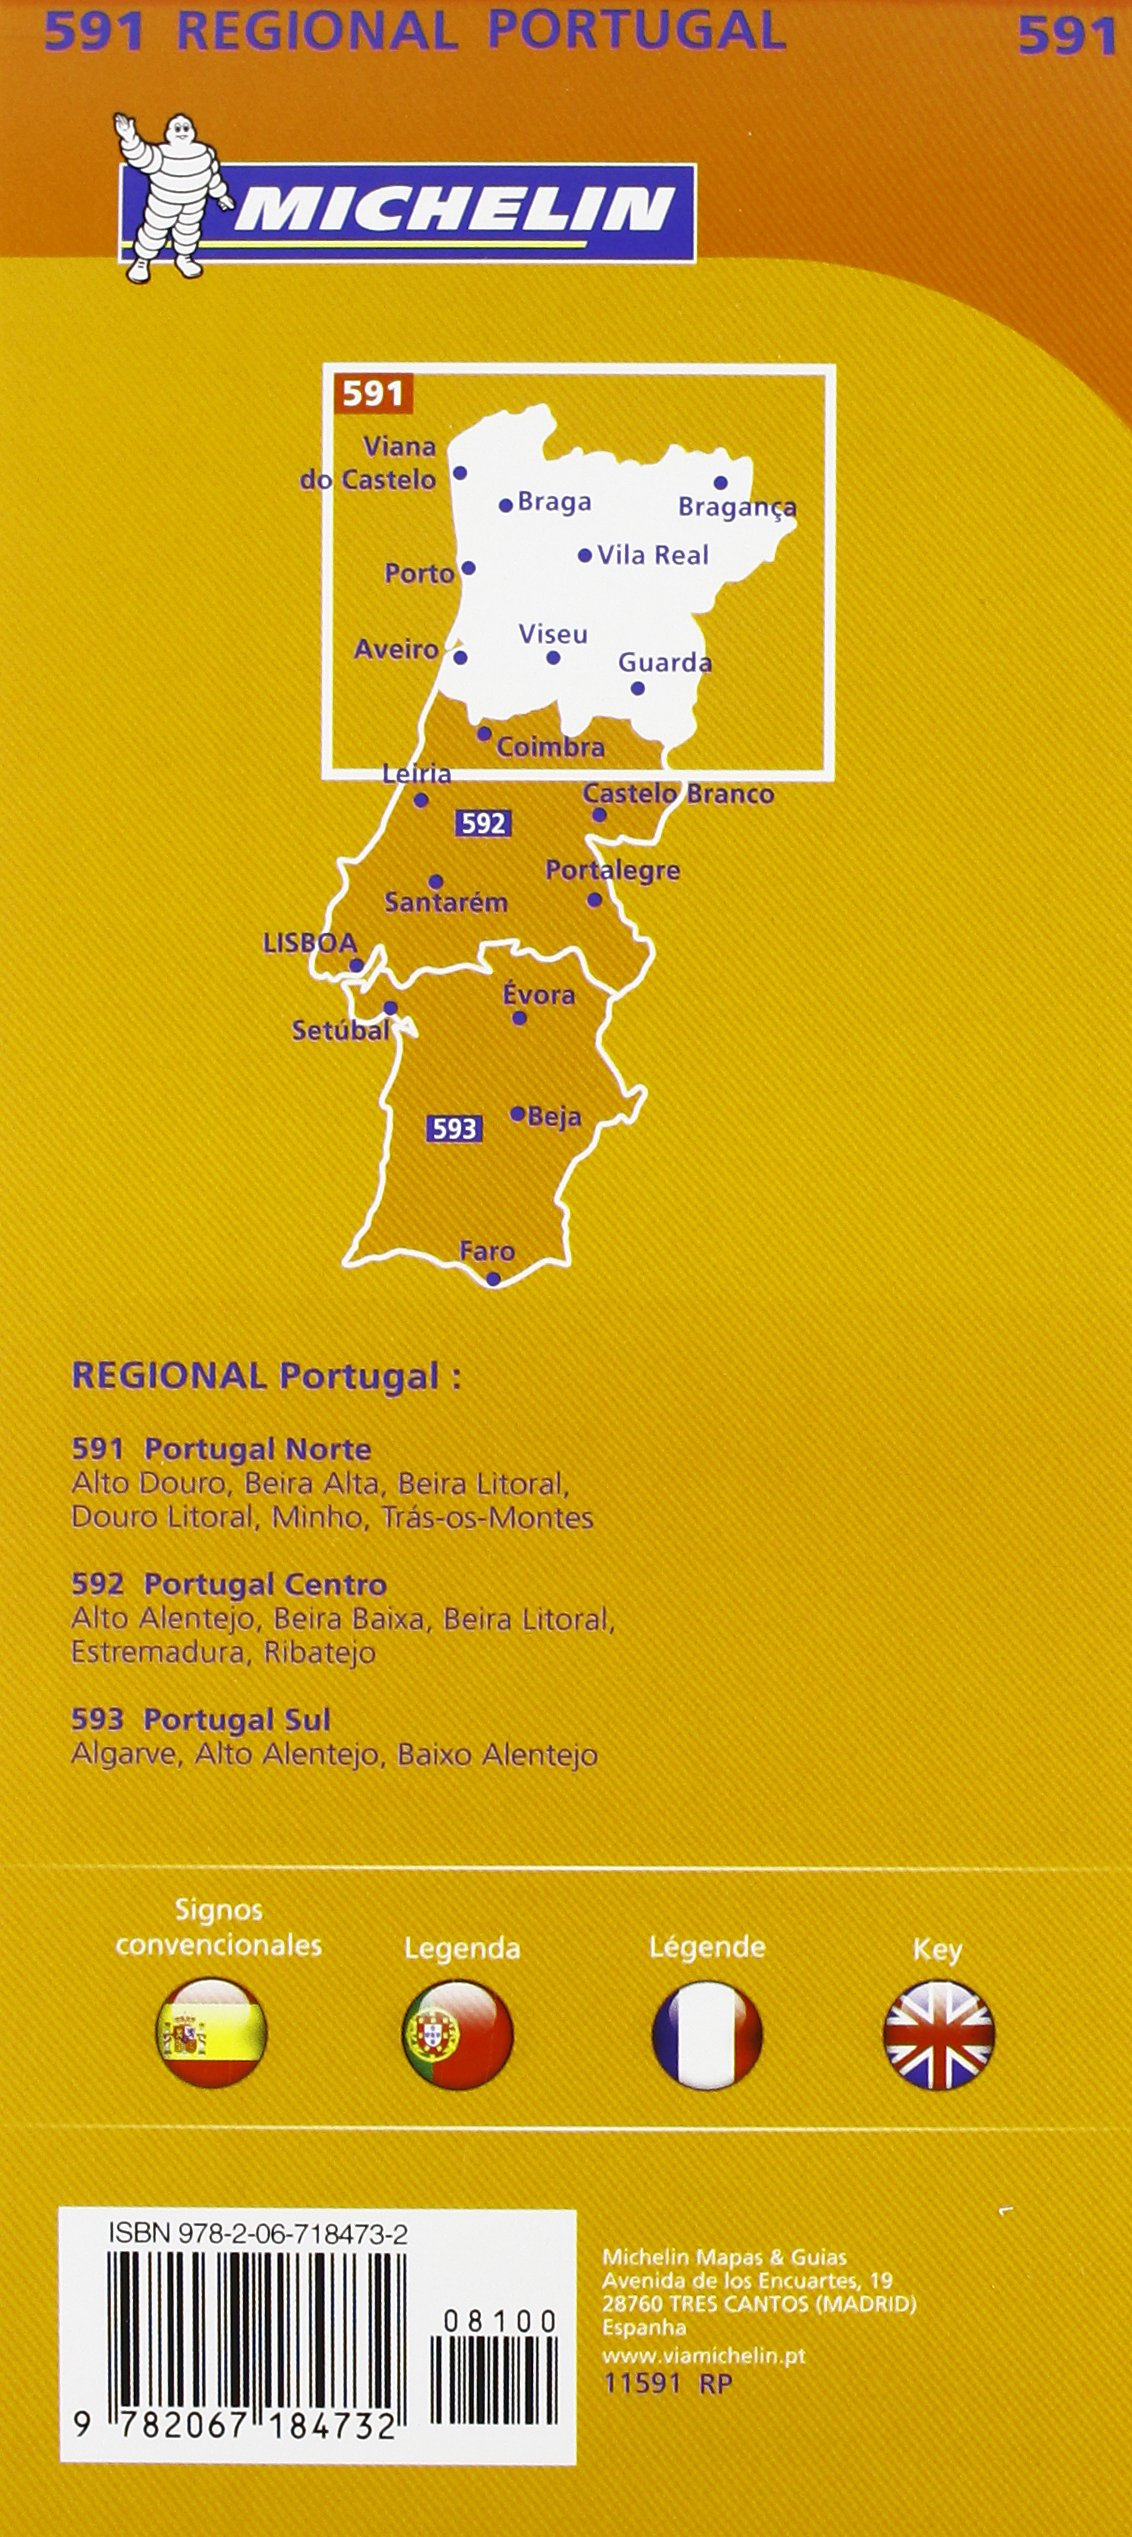 Portugal Norte - Michelin Regional Map 591: Map (Michelin Regional Maps):  Amazon.co.uk: Michelin: 9782067184732: Books